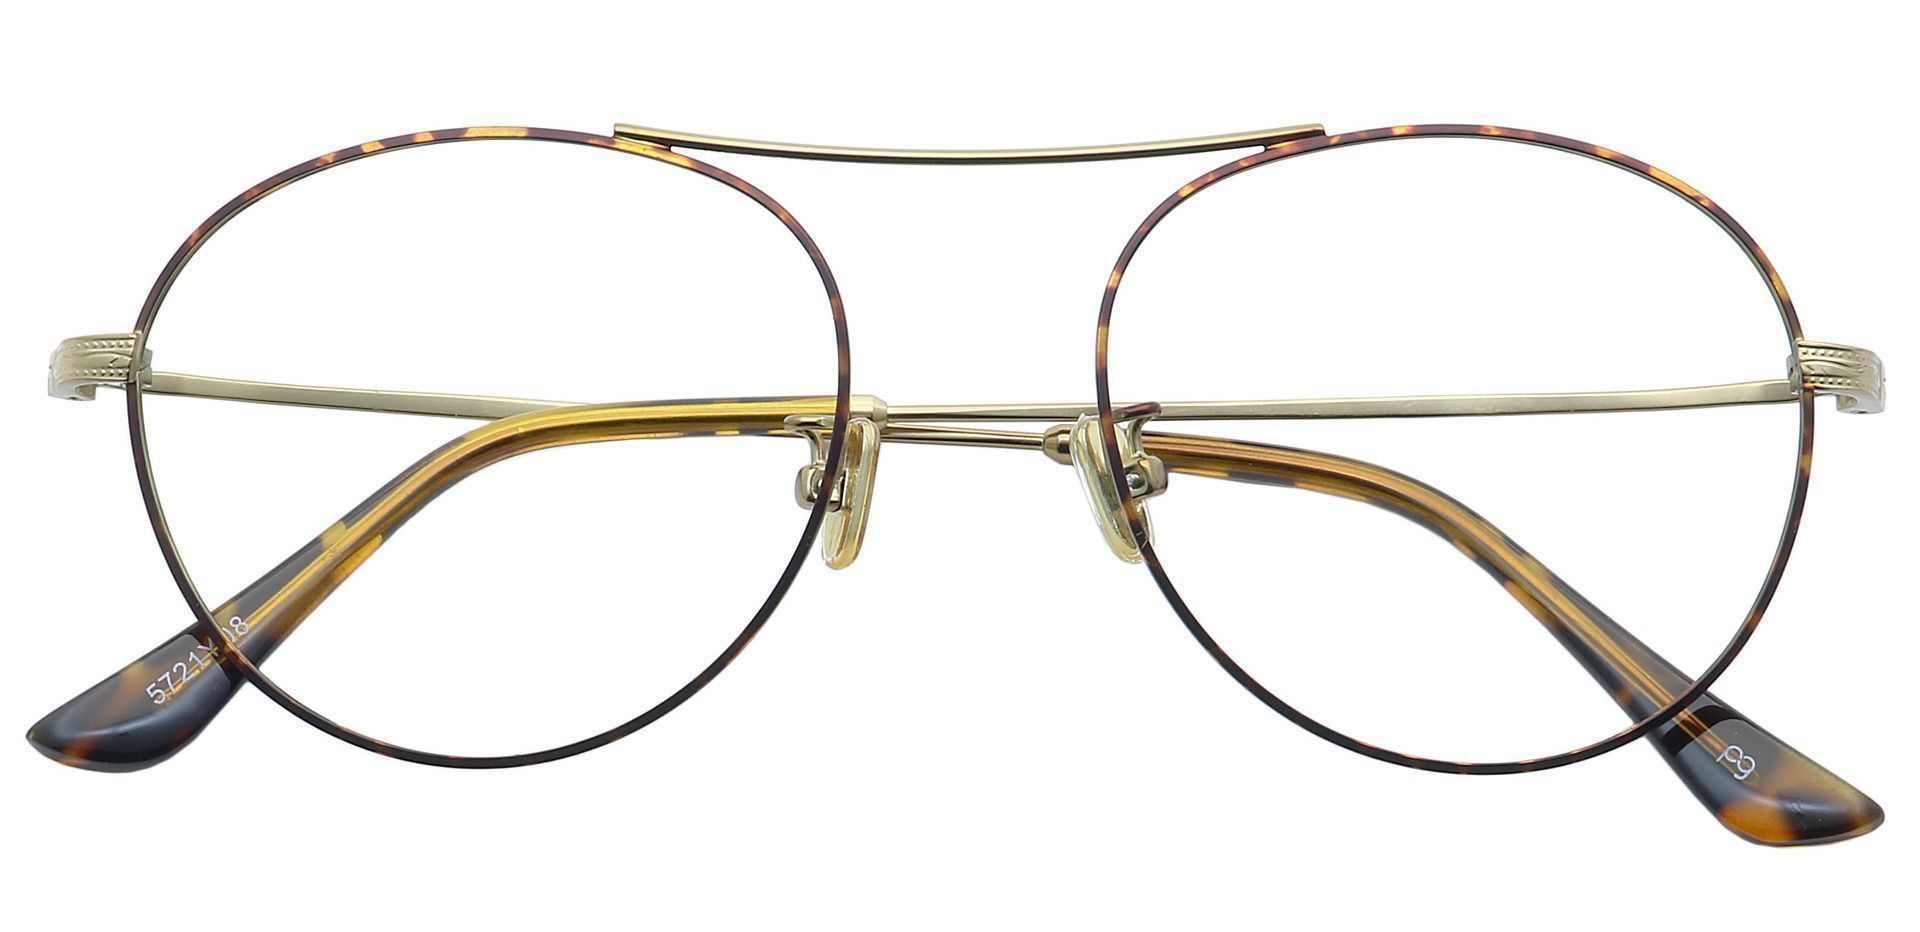 Finn Round Lined Bifocal Glasses - Yellow